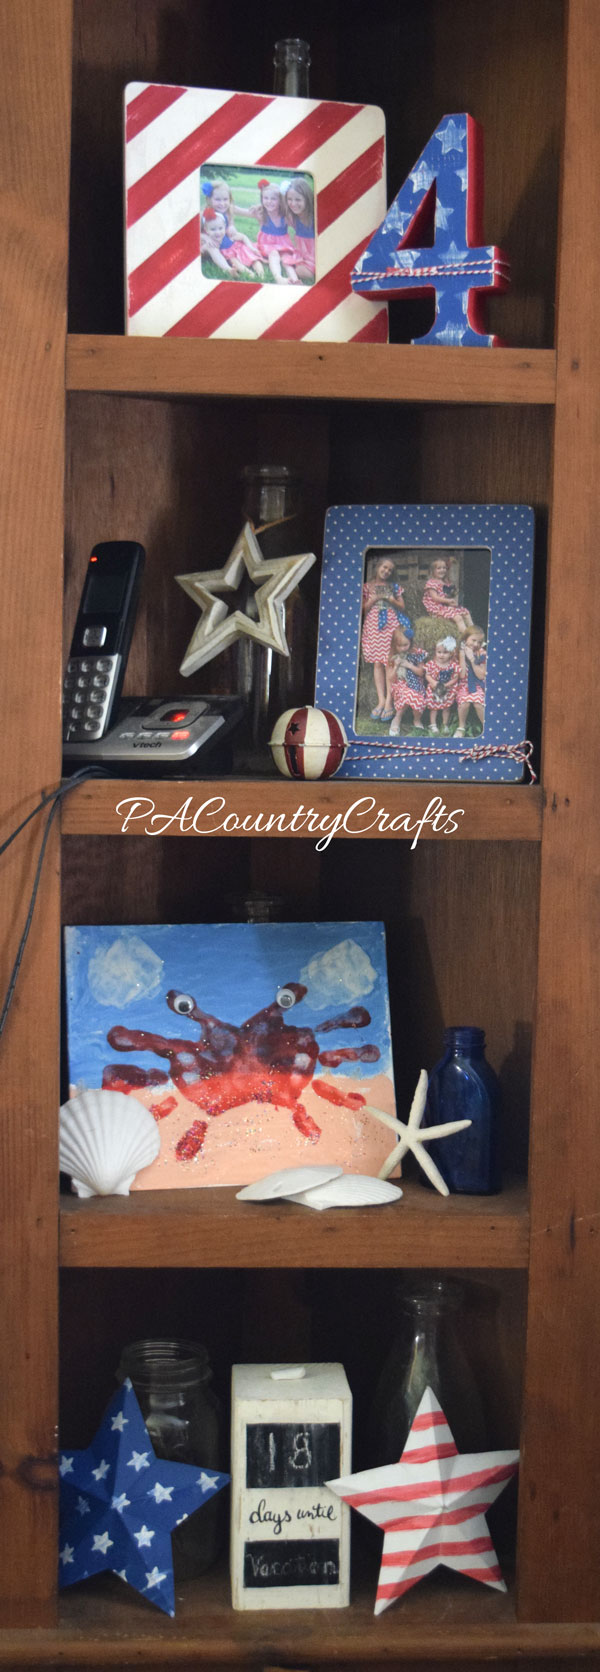 July 4th home decor on a corner shelf